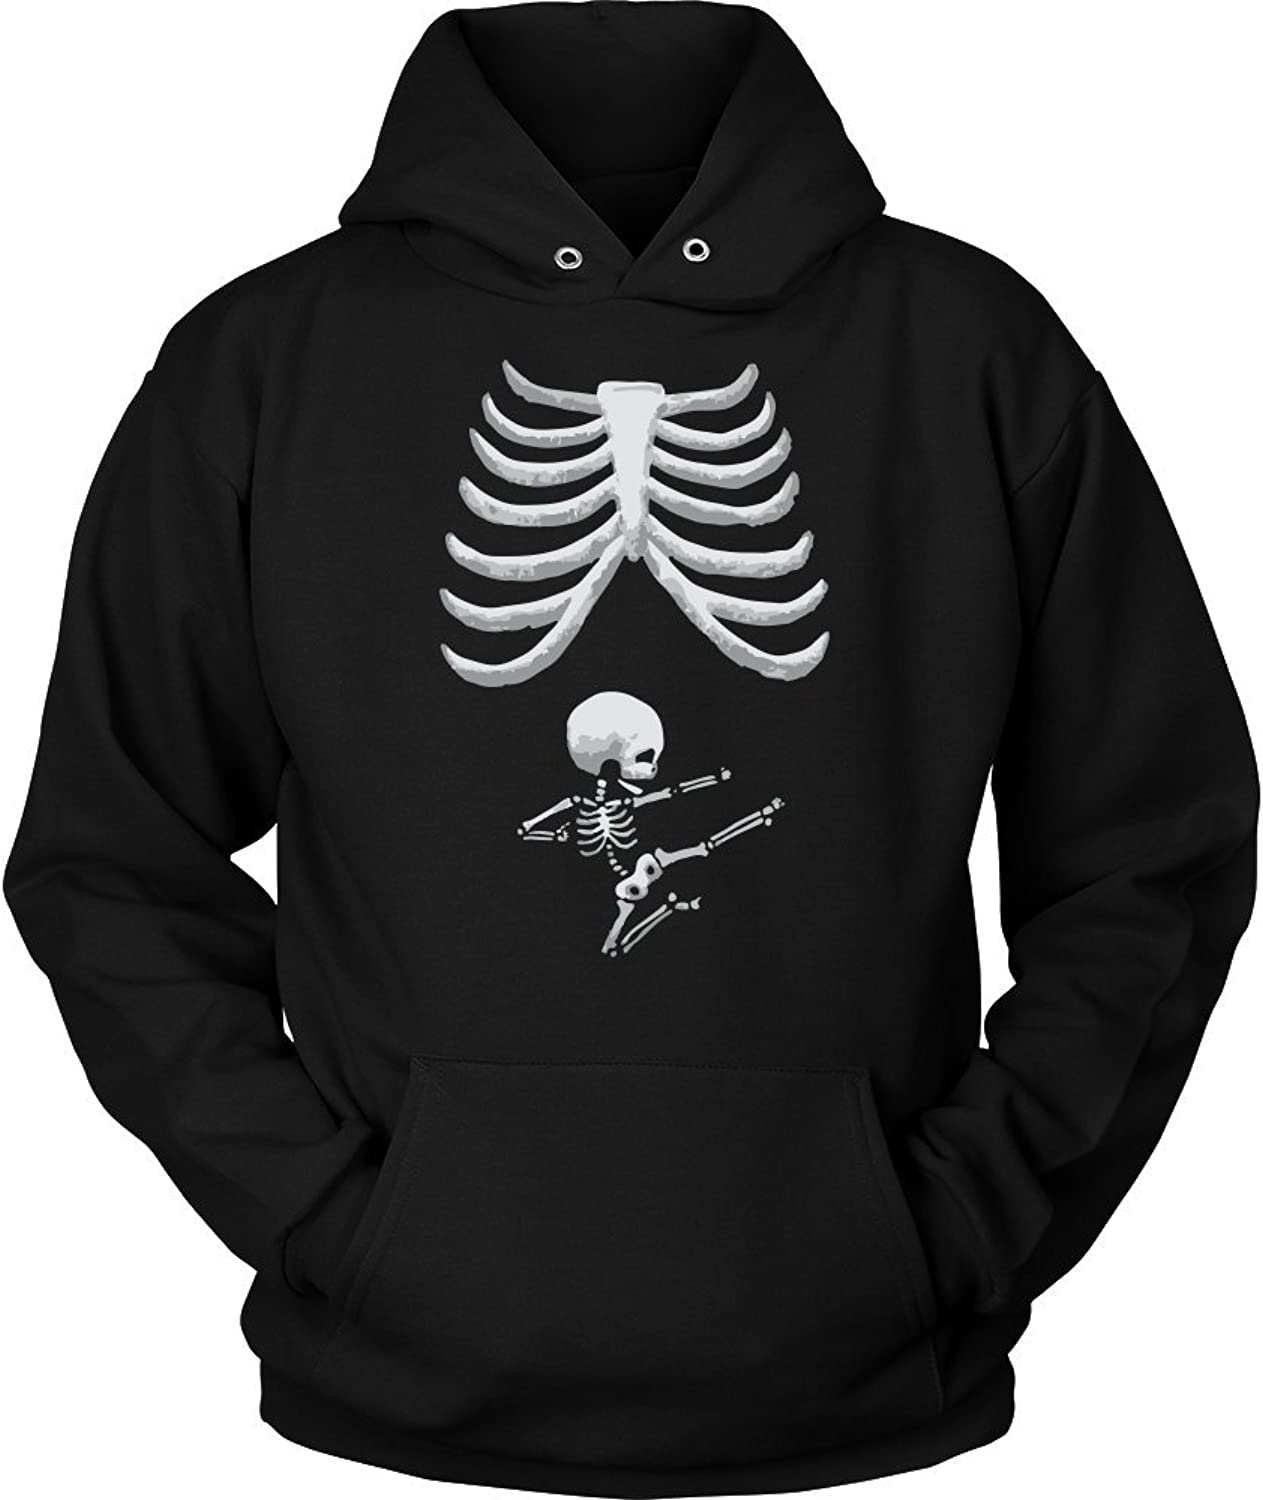 Funny Baby Skeleton for Pregnant Maternity Women Hoodie Halloween, Gift for Mom, Mother's Day